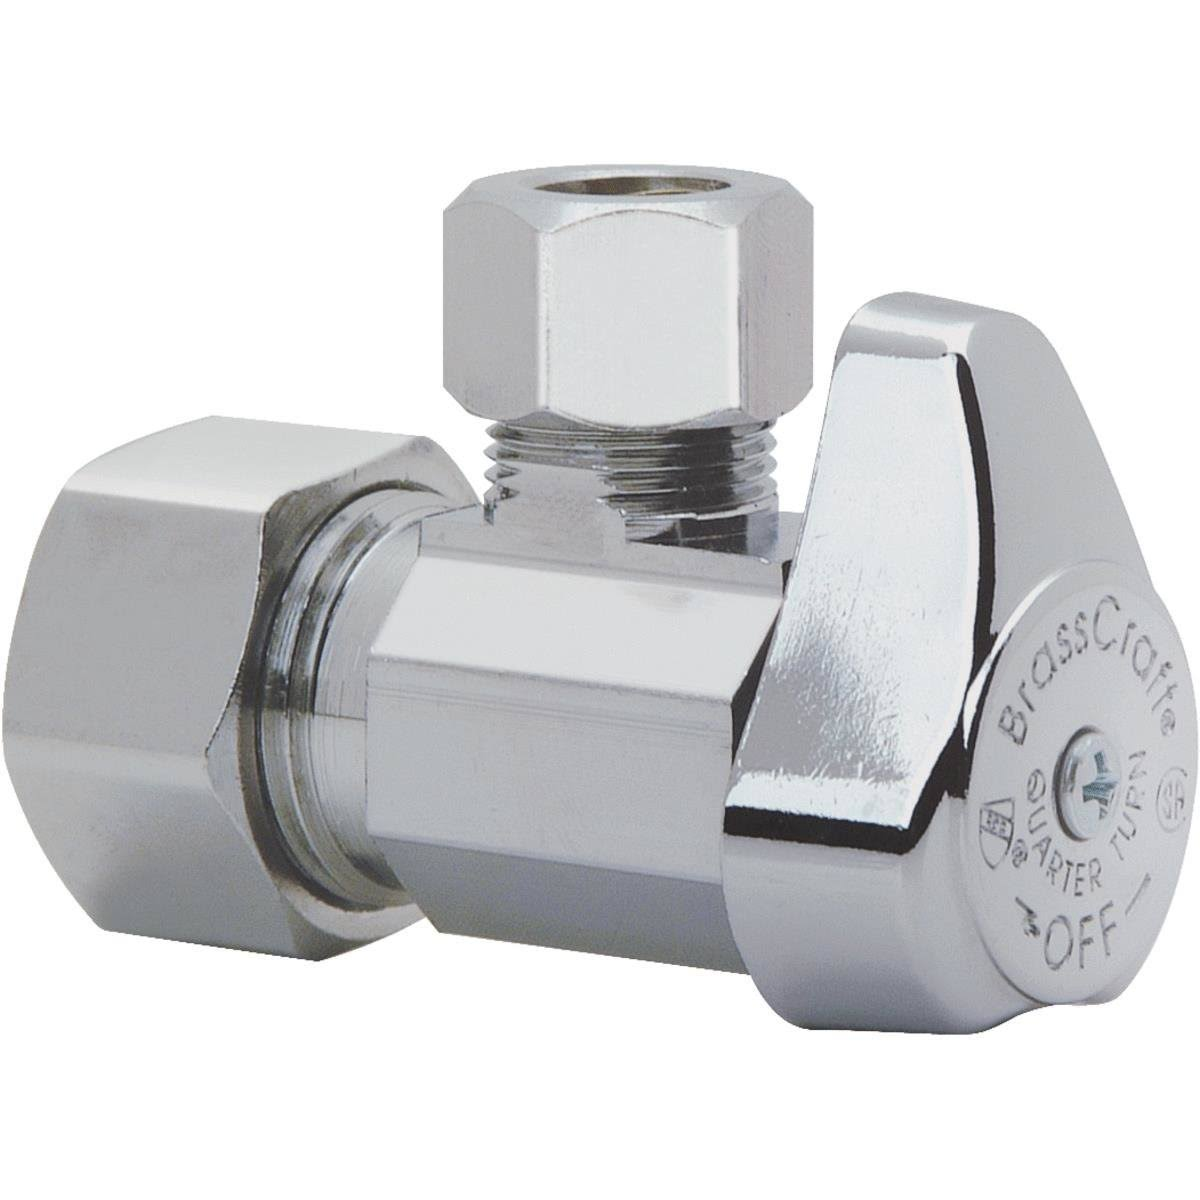 "Brass Craft Quarter Turn Angle Stop Valve - Chrome, 5/8"" x 3/8"""